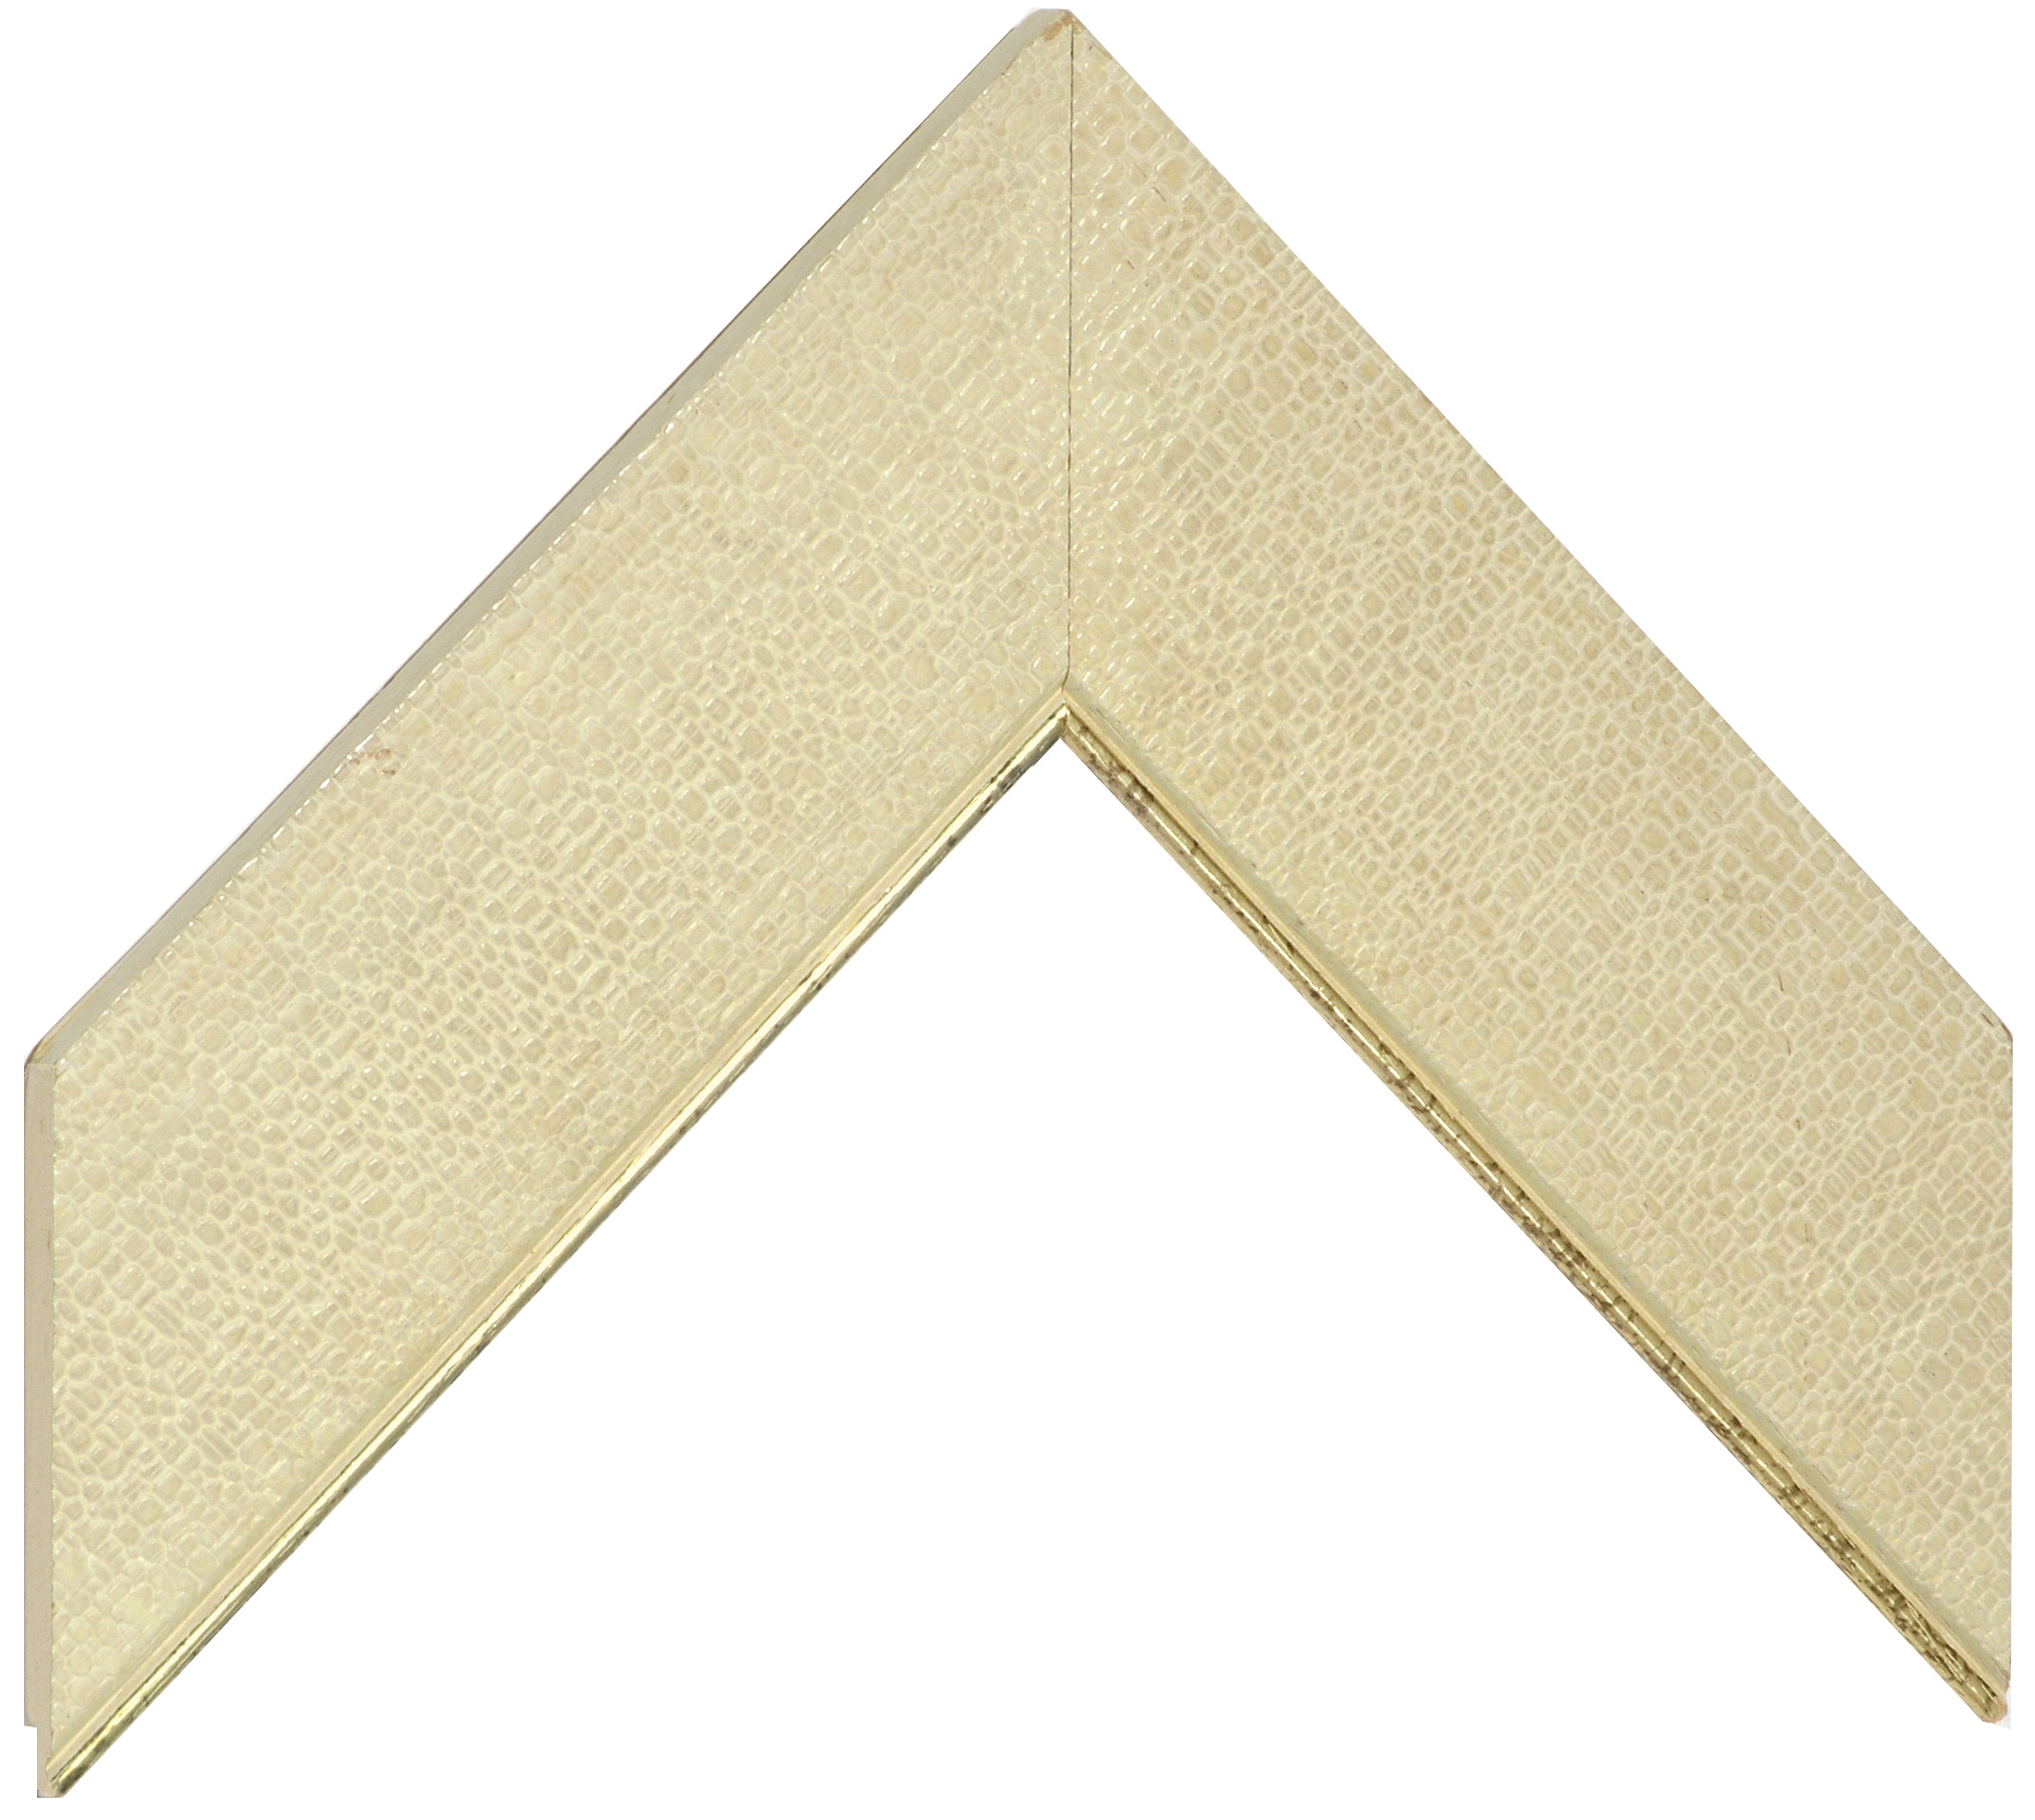 Liner ayous 52mm - flat, fabric effect, gold edge